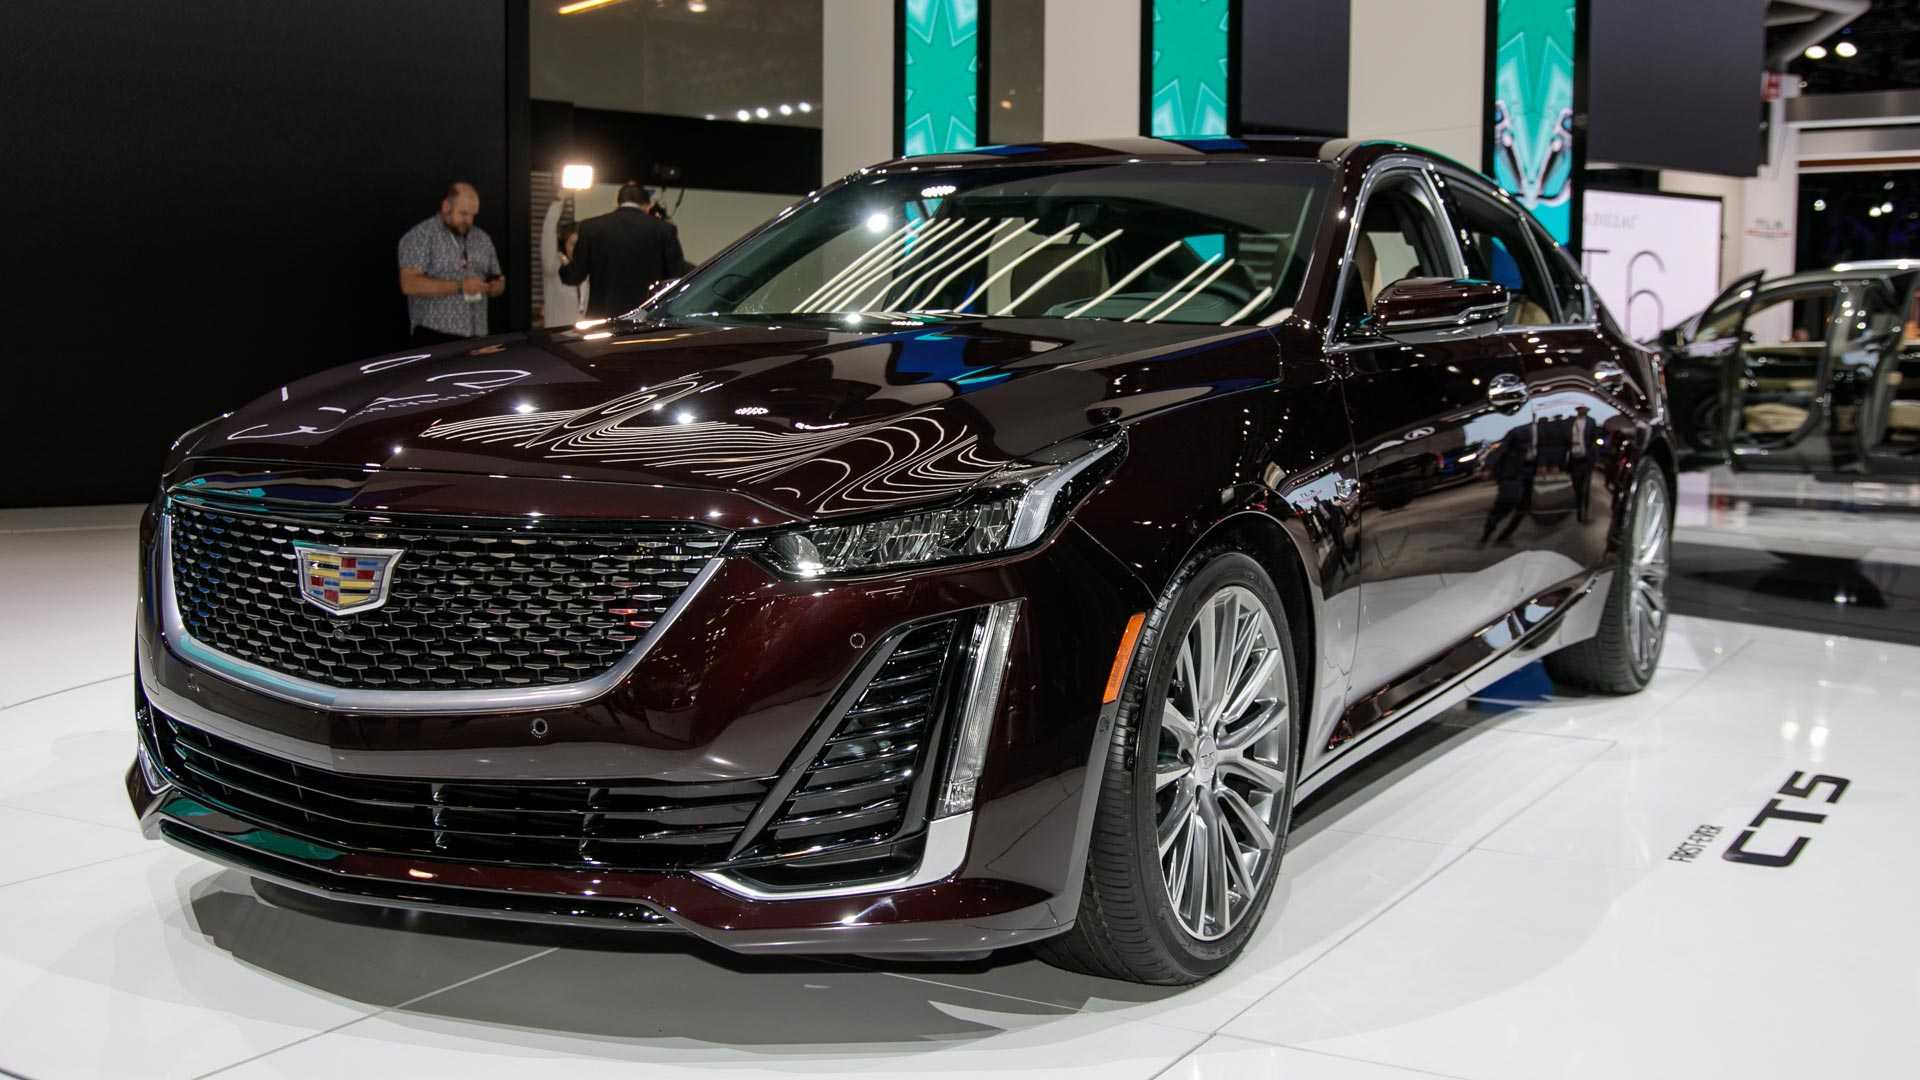 92 Best Review 2020 Cadillac Cts V Horsepower Photos for 2020 Cadillac Cts V Horsepower